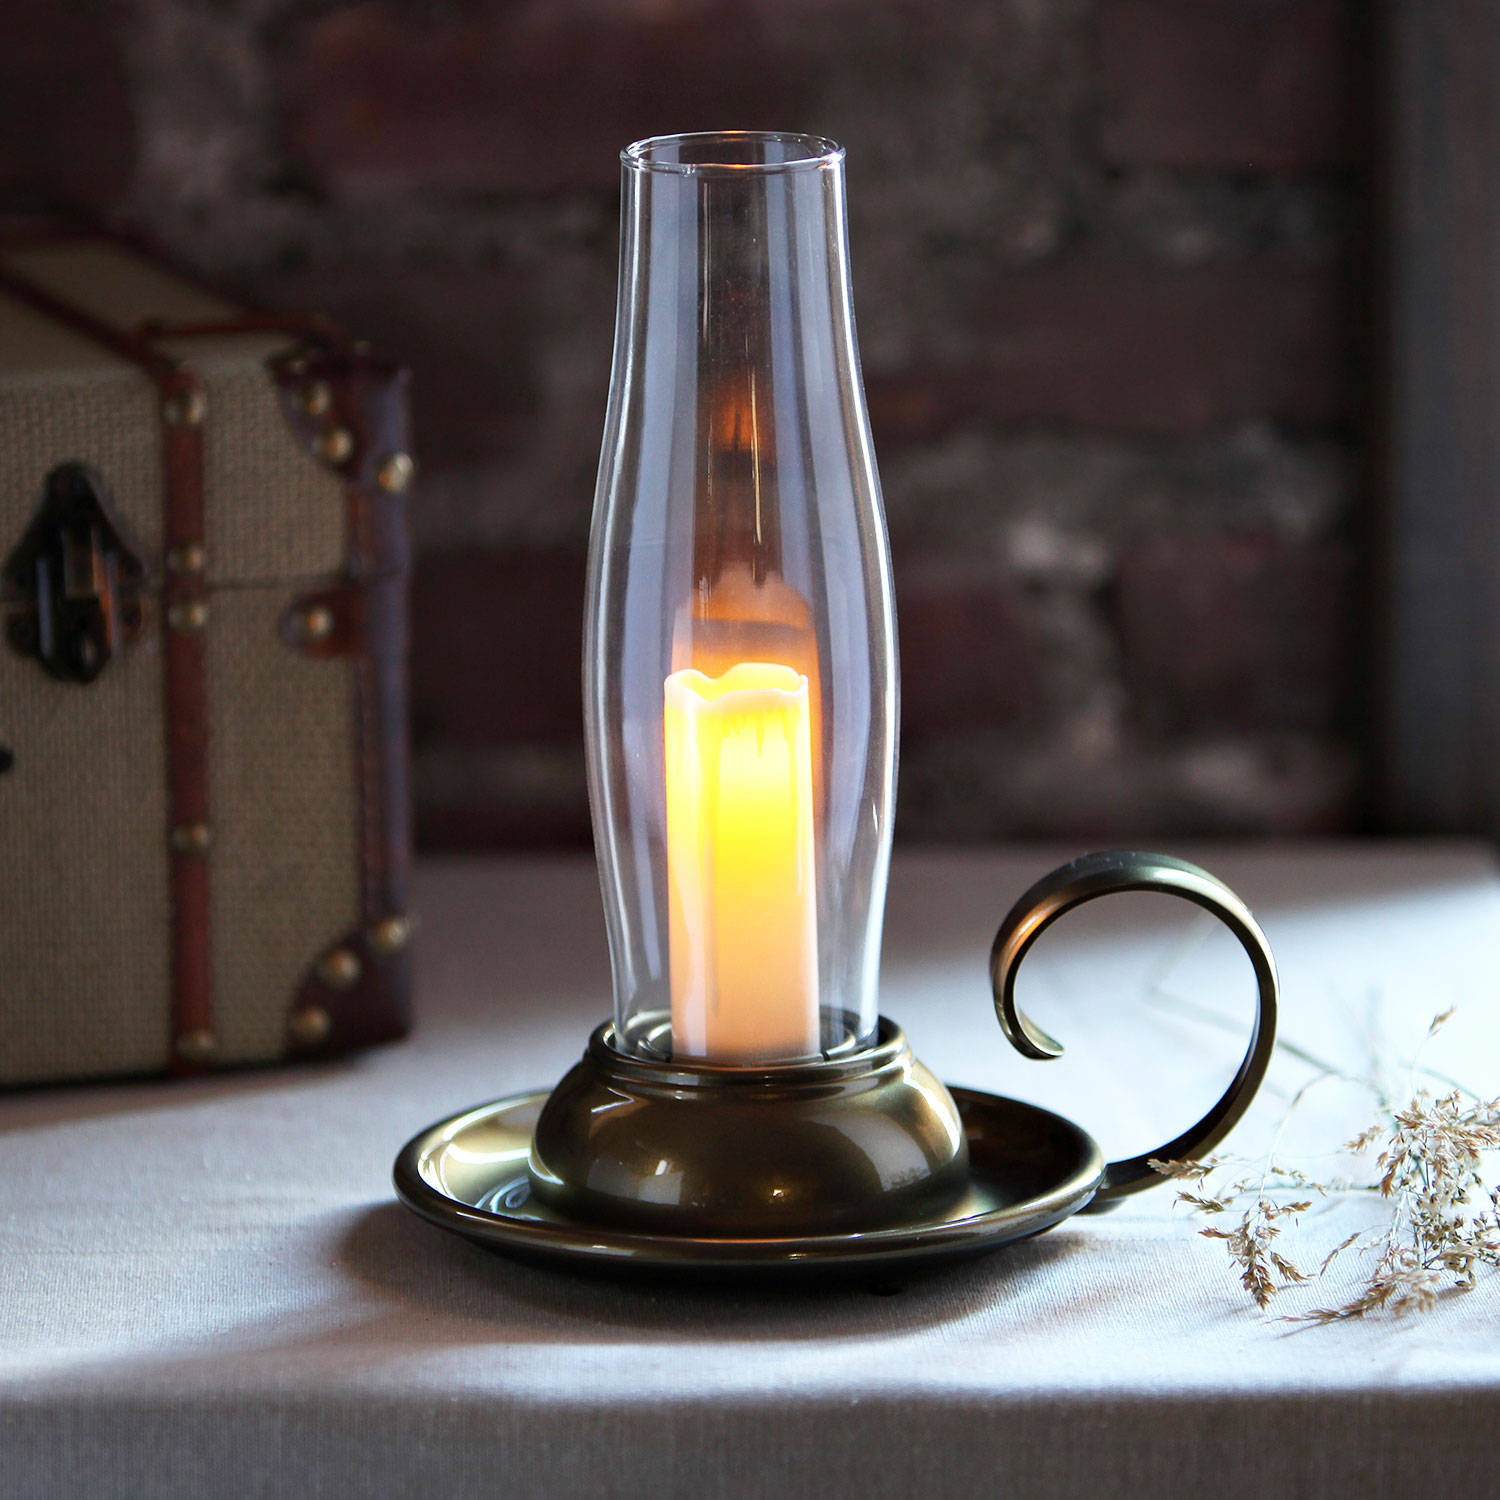 open image - Christmas Candle Lights For Windows